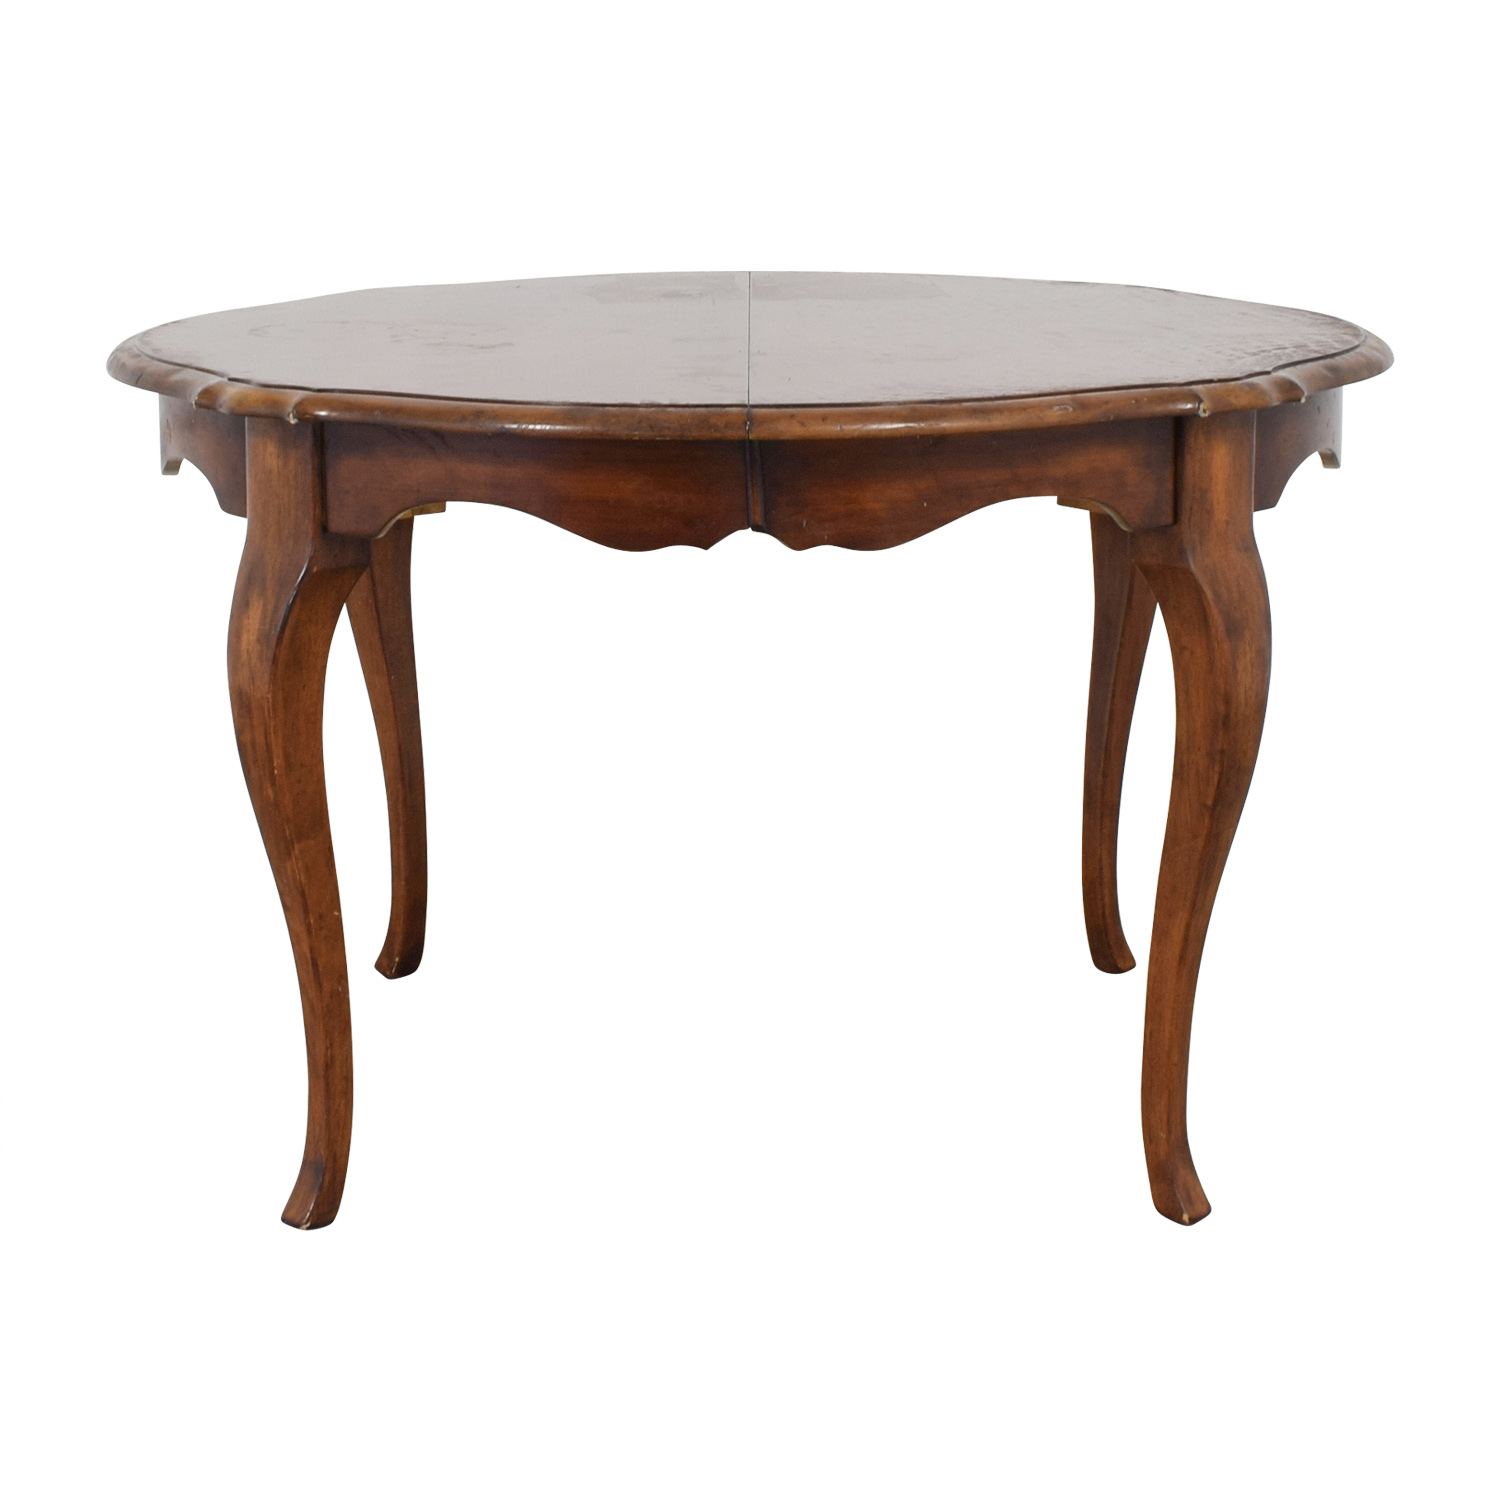 buy  Round Wood Dining Table online